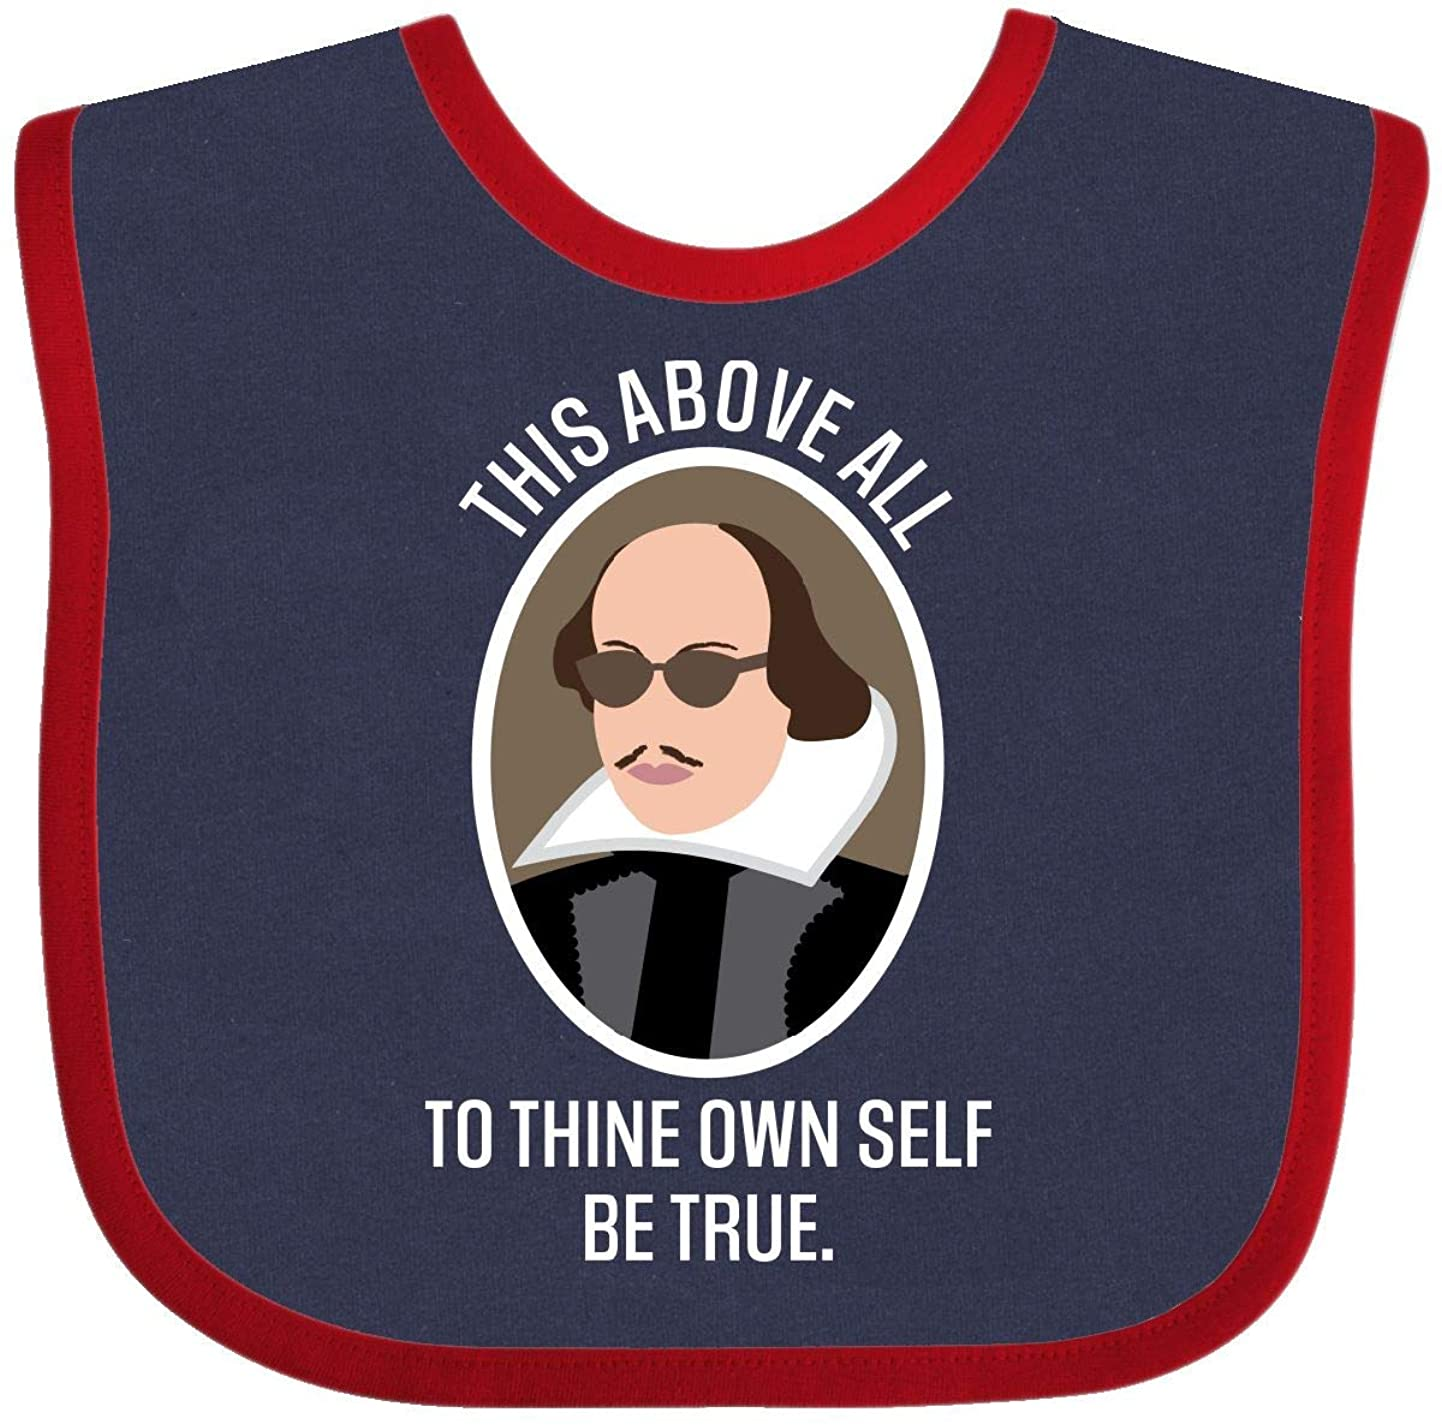 Inktastic - To Thine Own Self Be True shakespeare Baby Bib 1fc1e hlnewodspge4